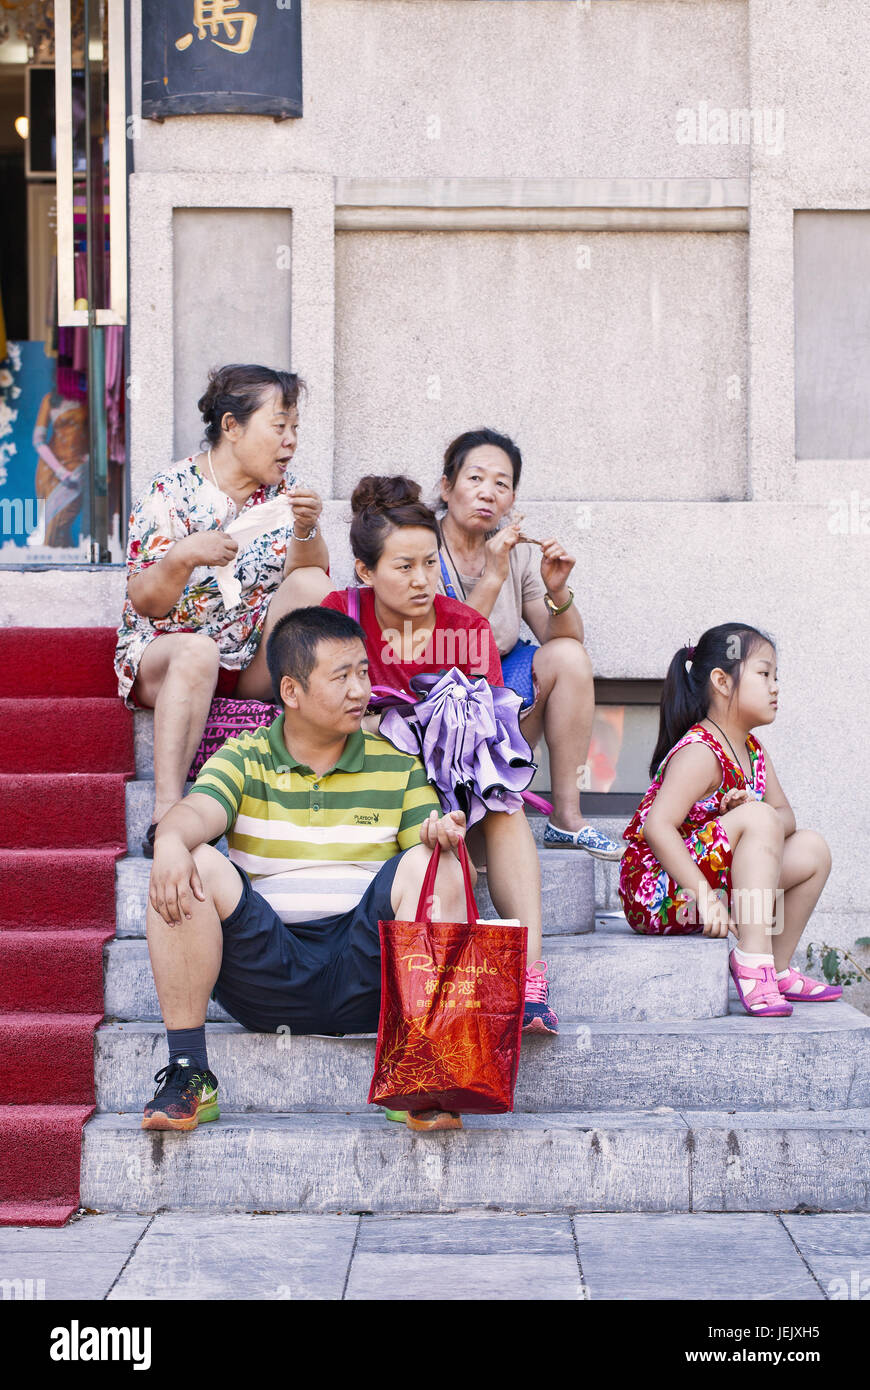 BEIJING-AUGUST 10, 2015. Chinese family having a break. Chinese are aware that family ties tend to looser in the - Stock Image